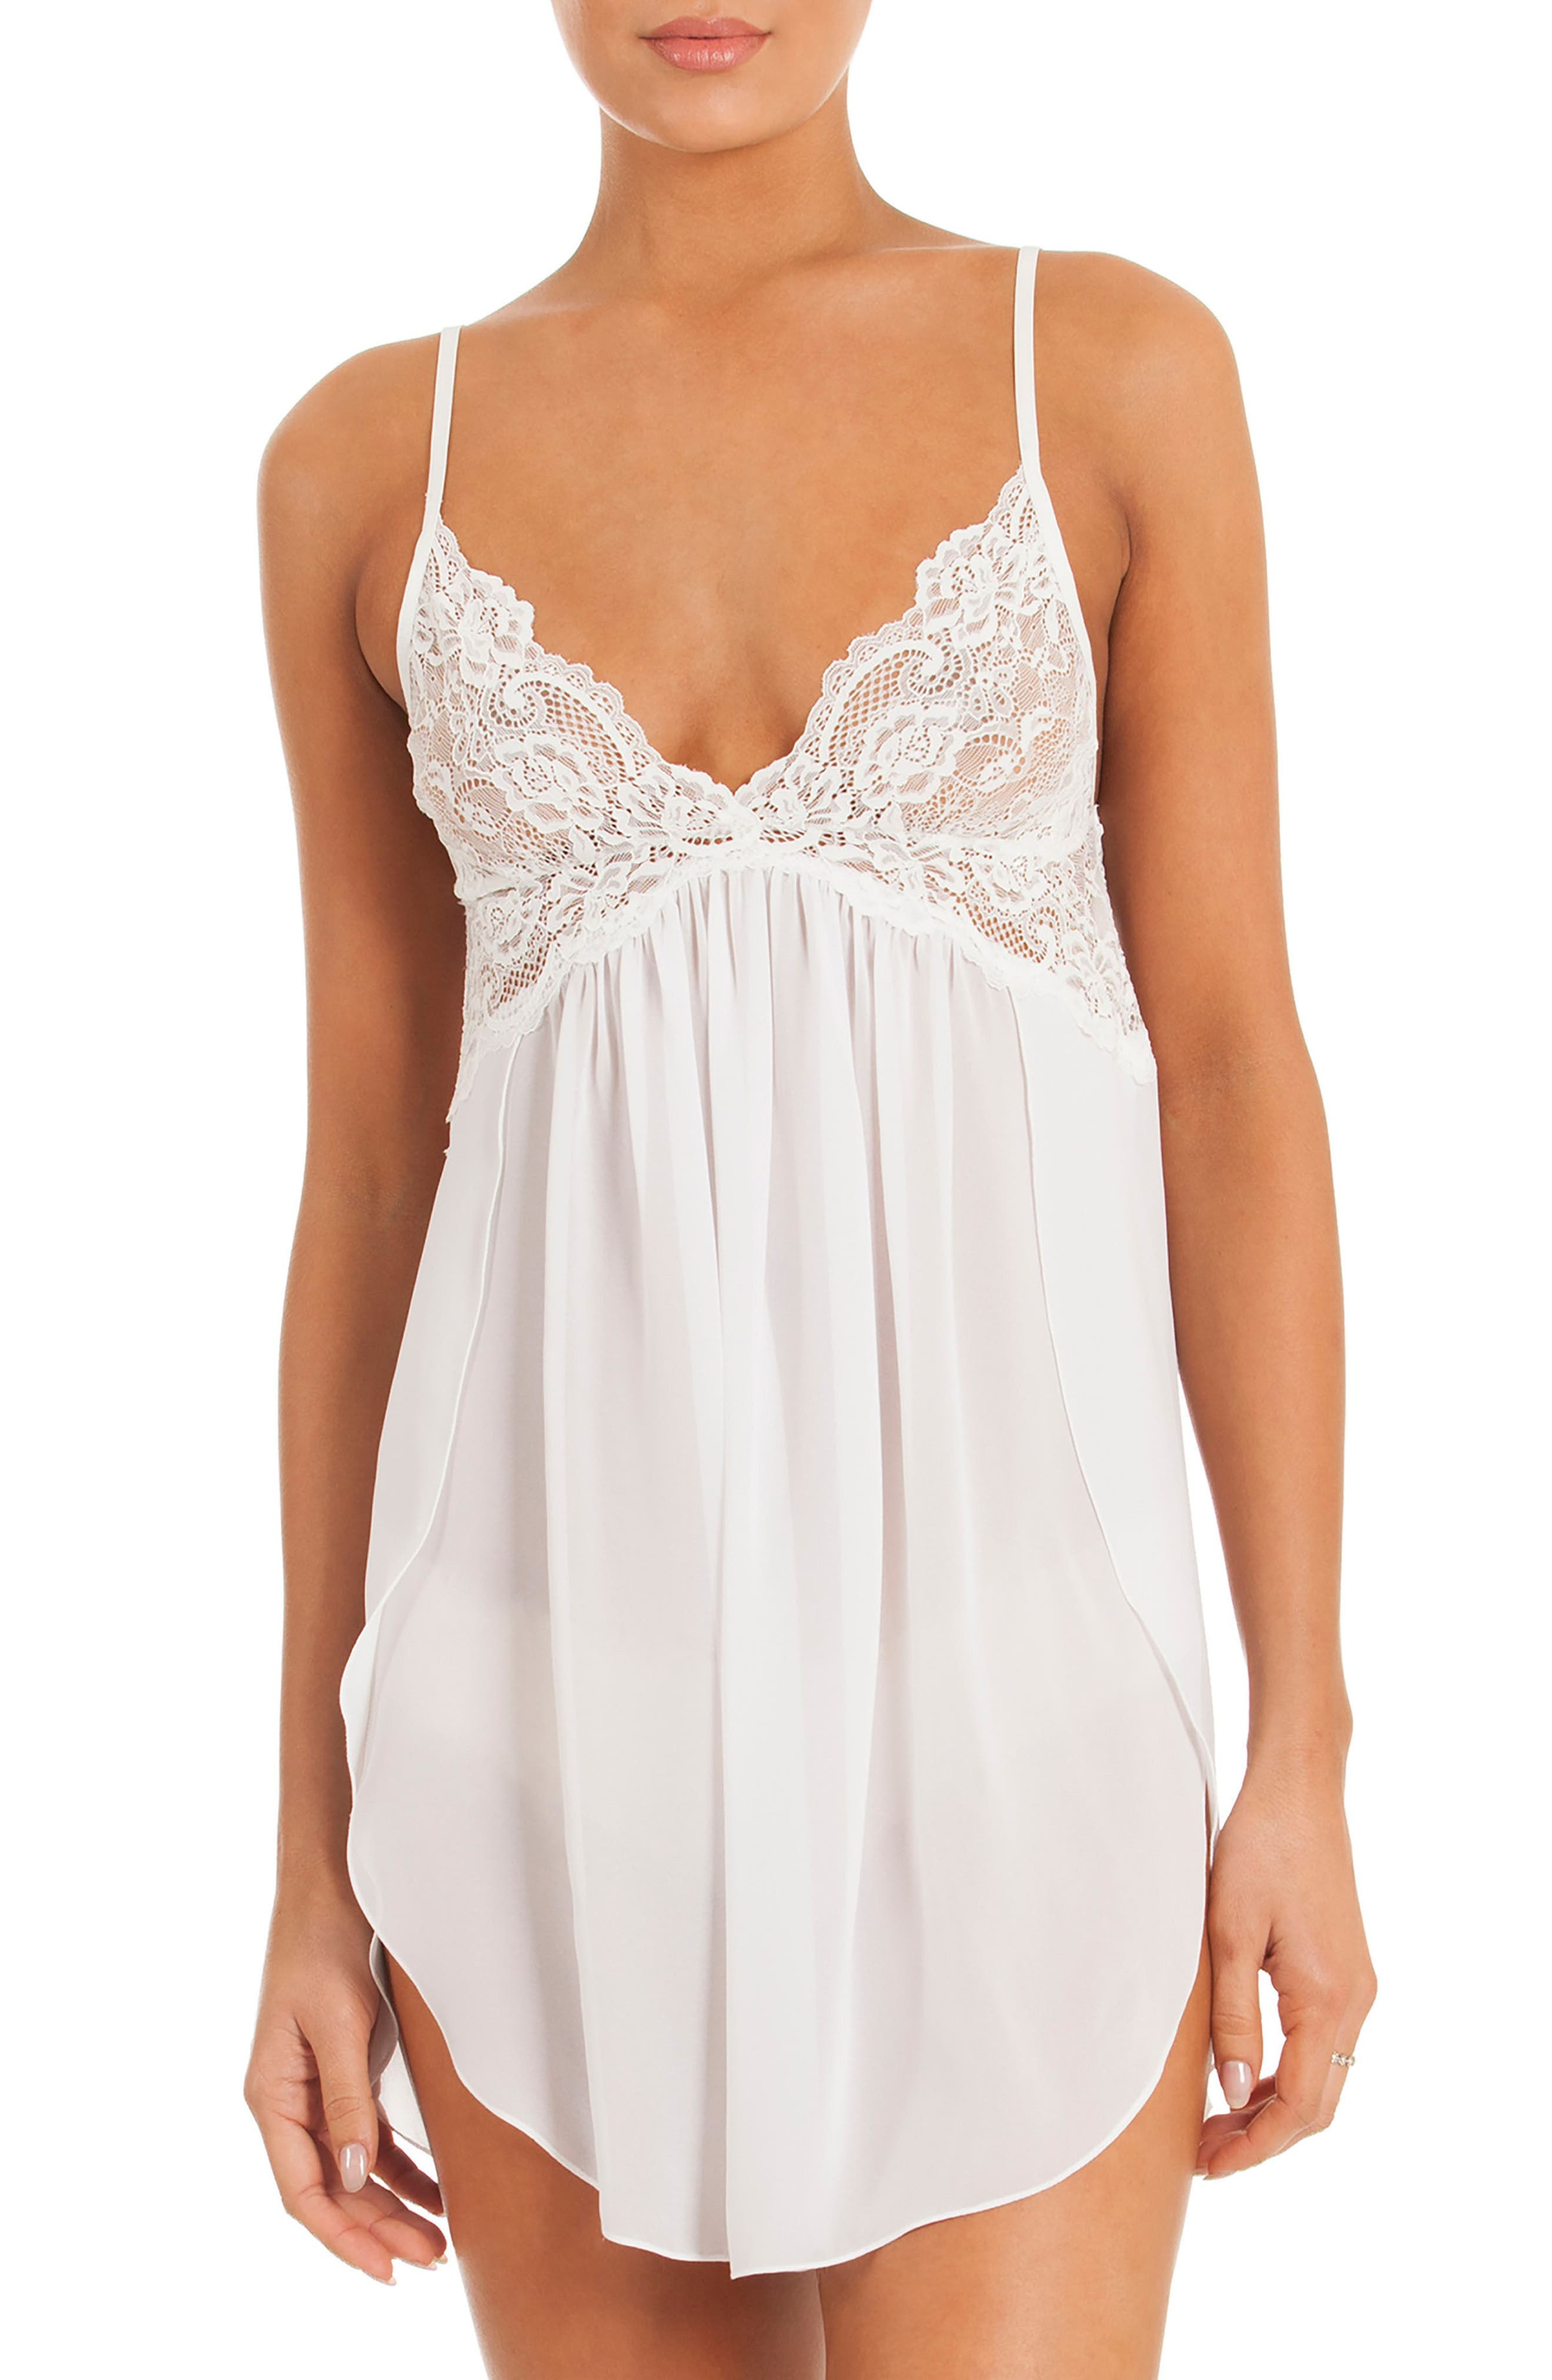 In Bloom by Jonquil Chemise